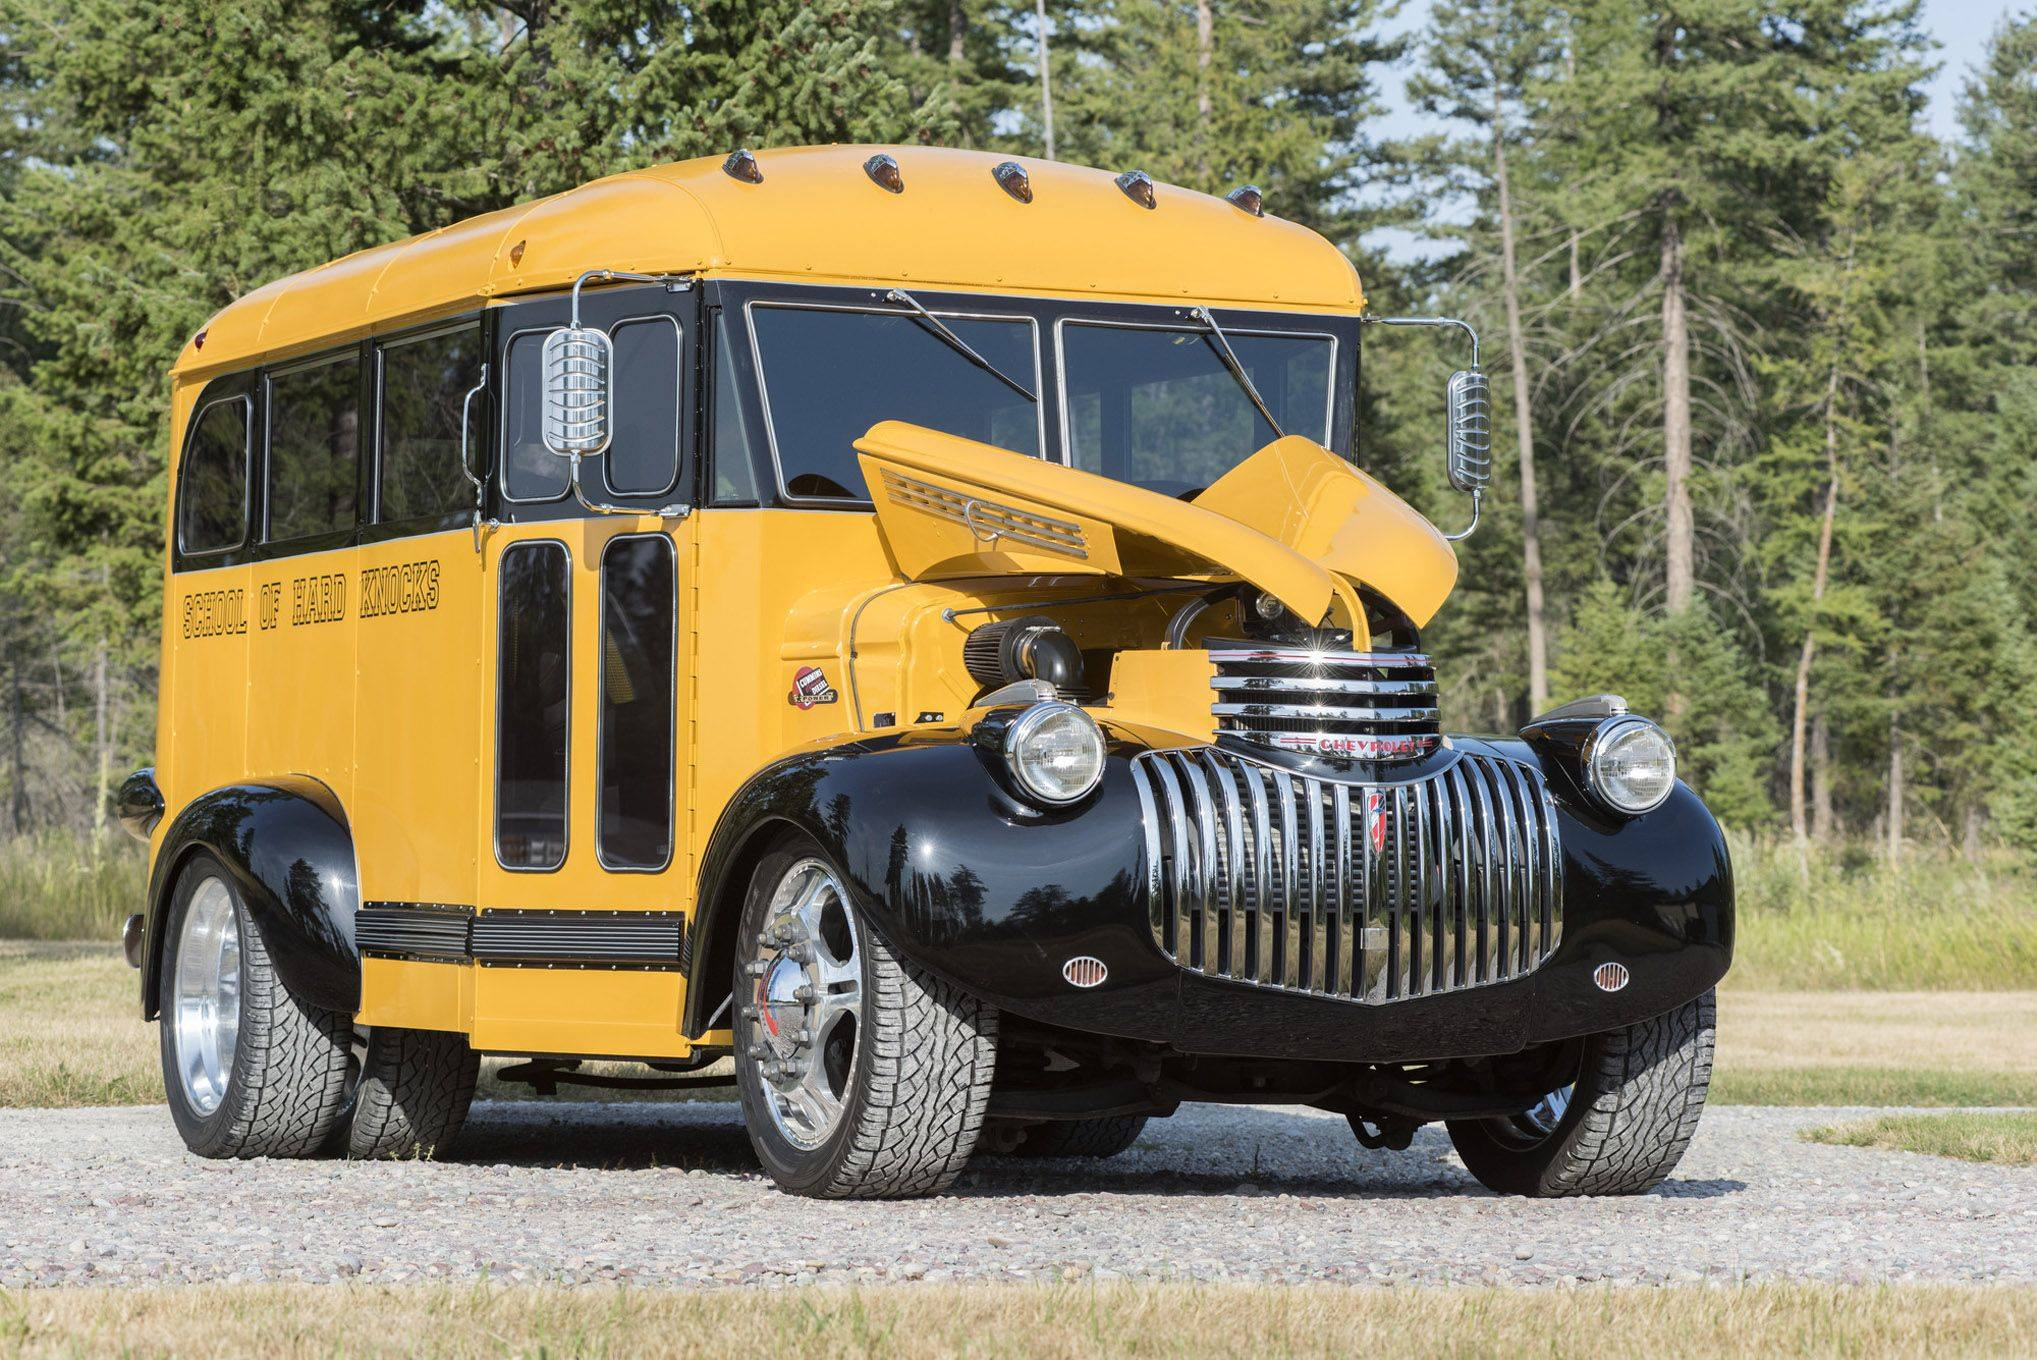 Chevy-model-1941-Engine-5-9-ltr-Whitefisch-Montana226-HP--1